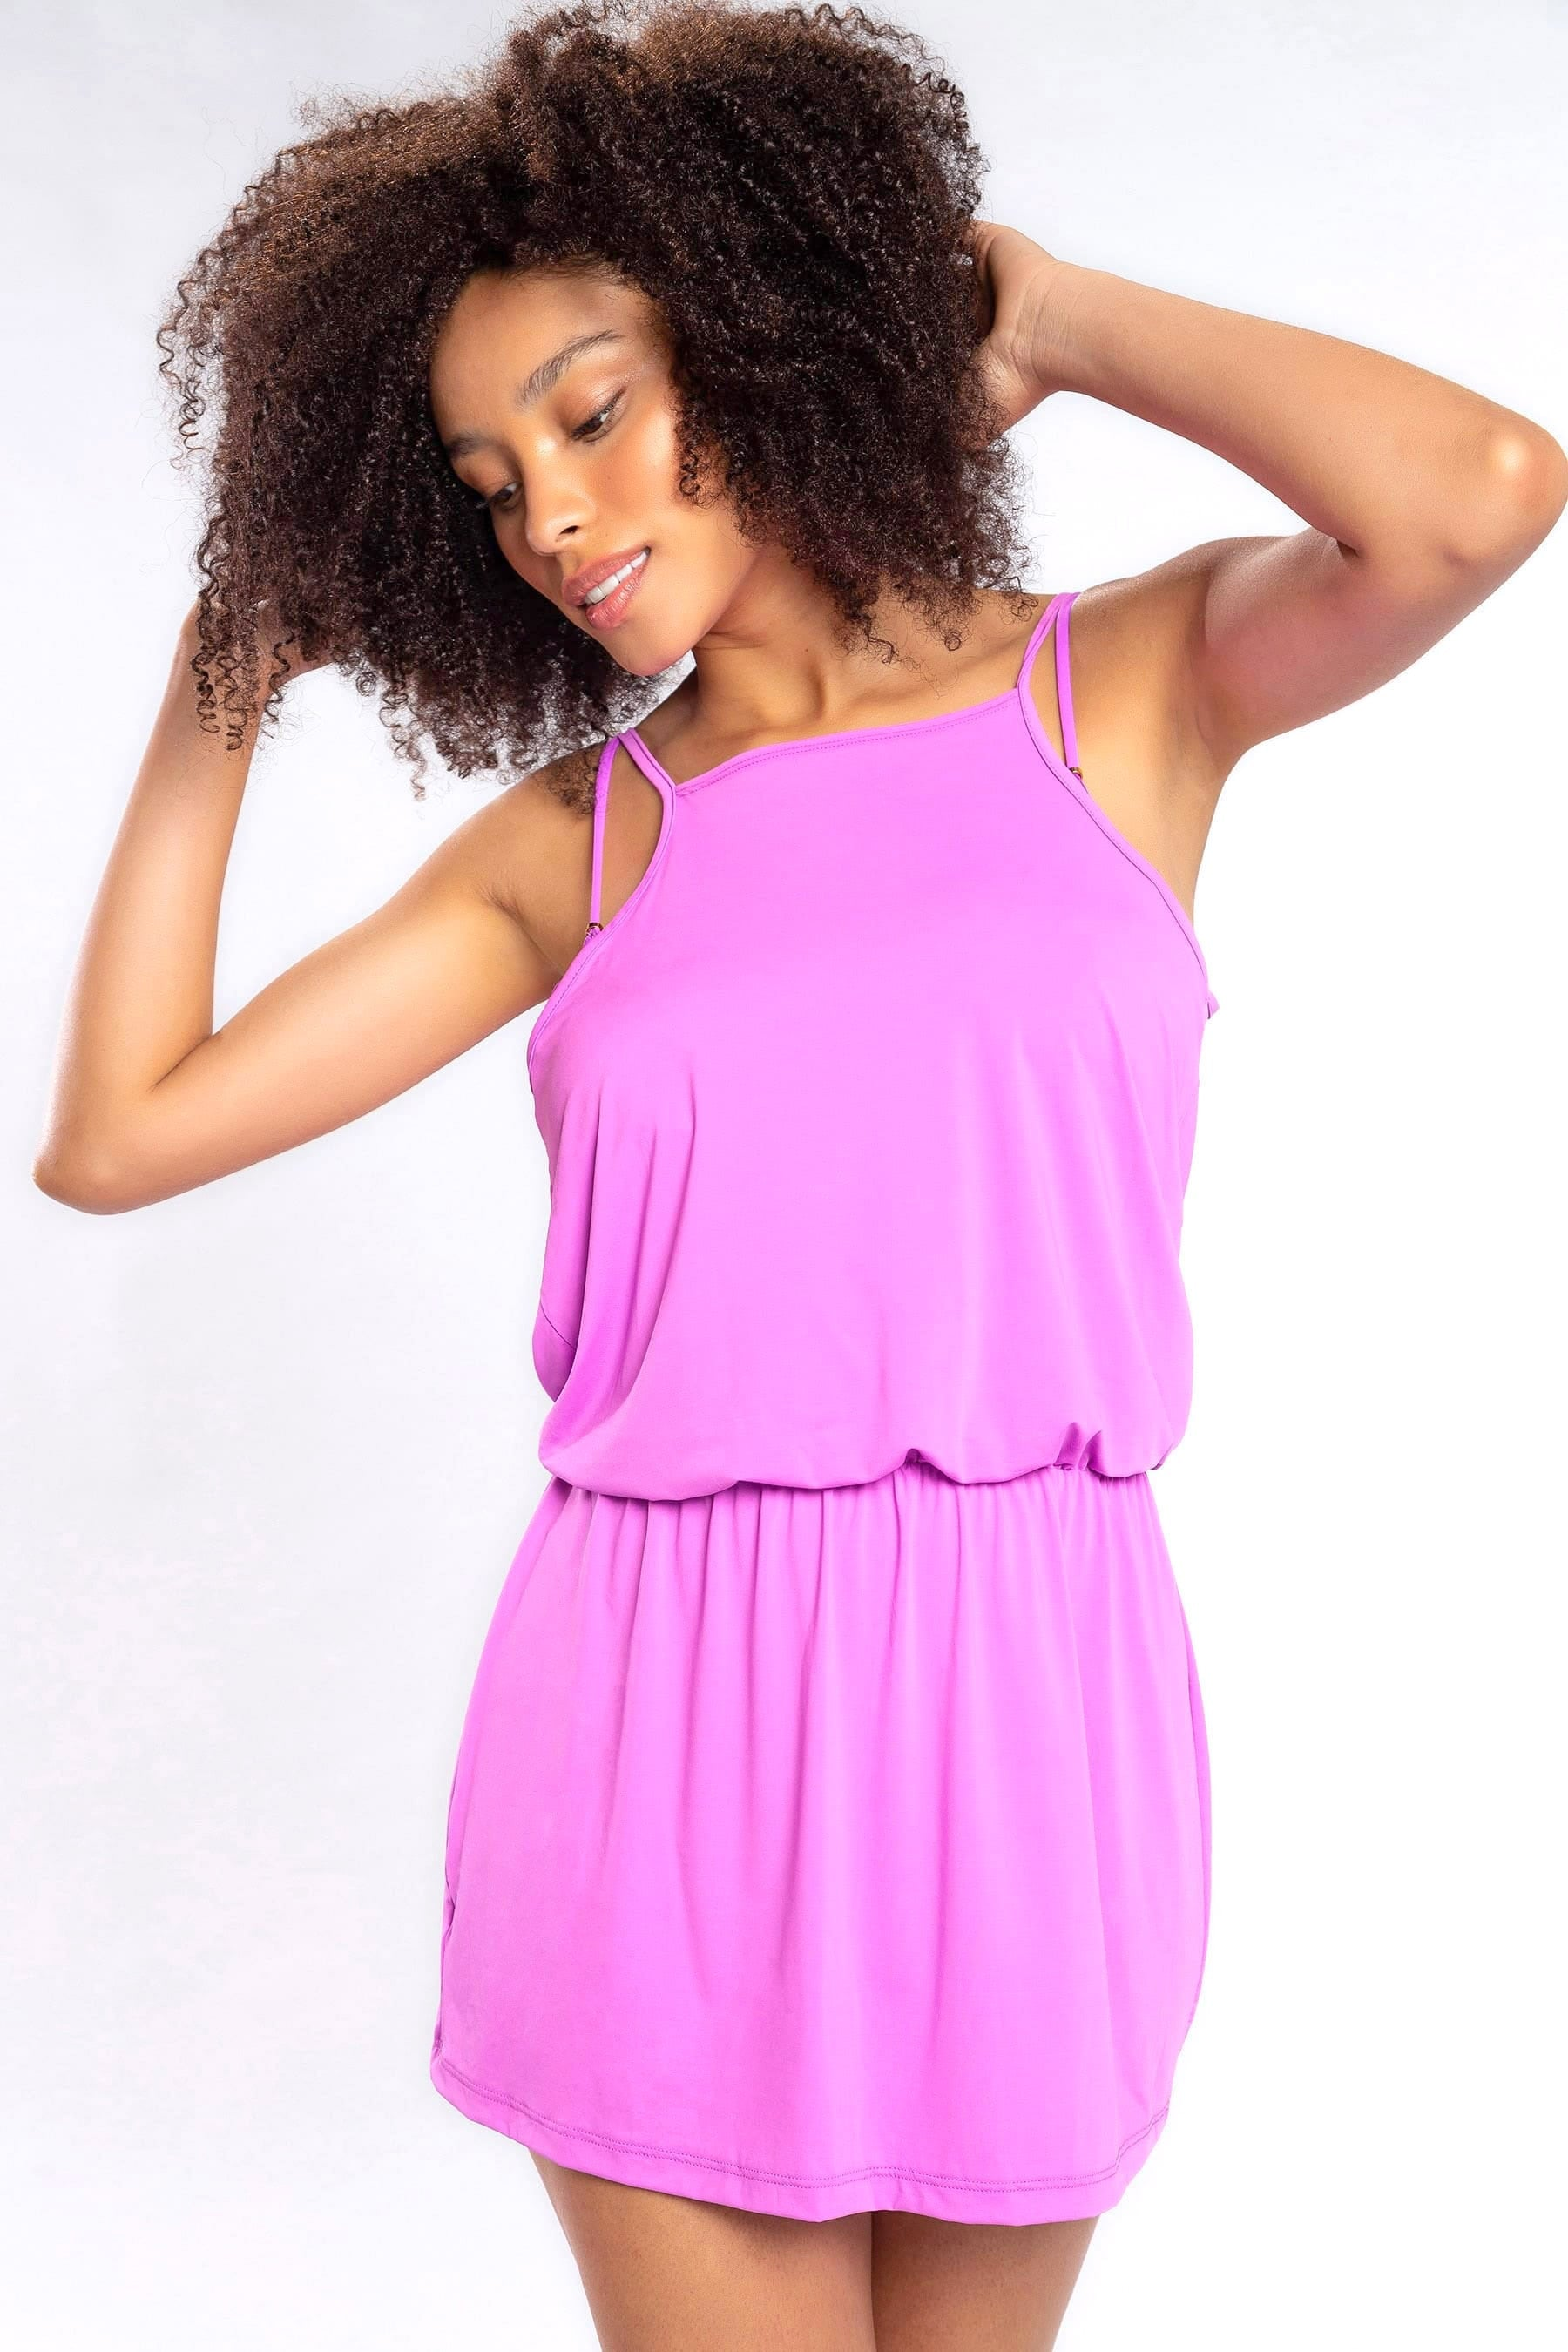 Essential Multifunctional Strappy Dress 2